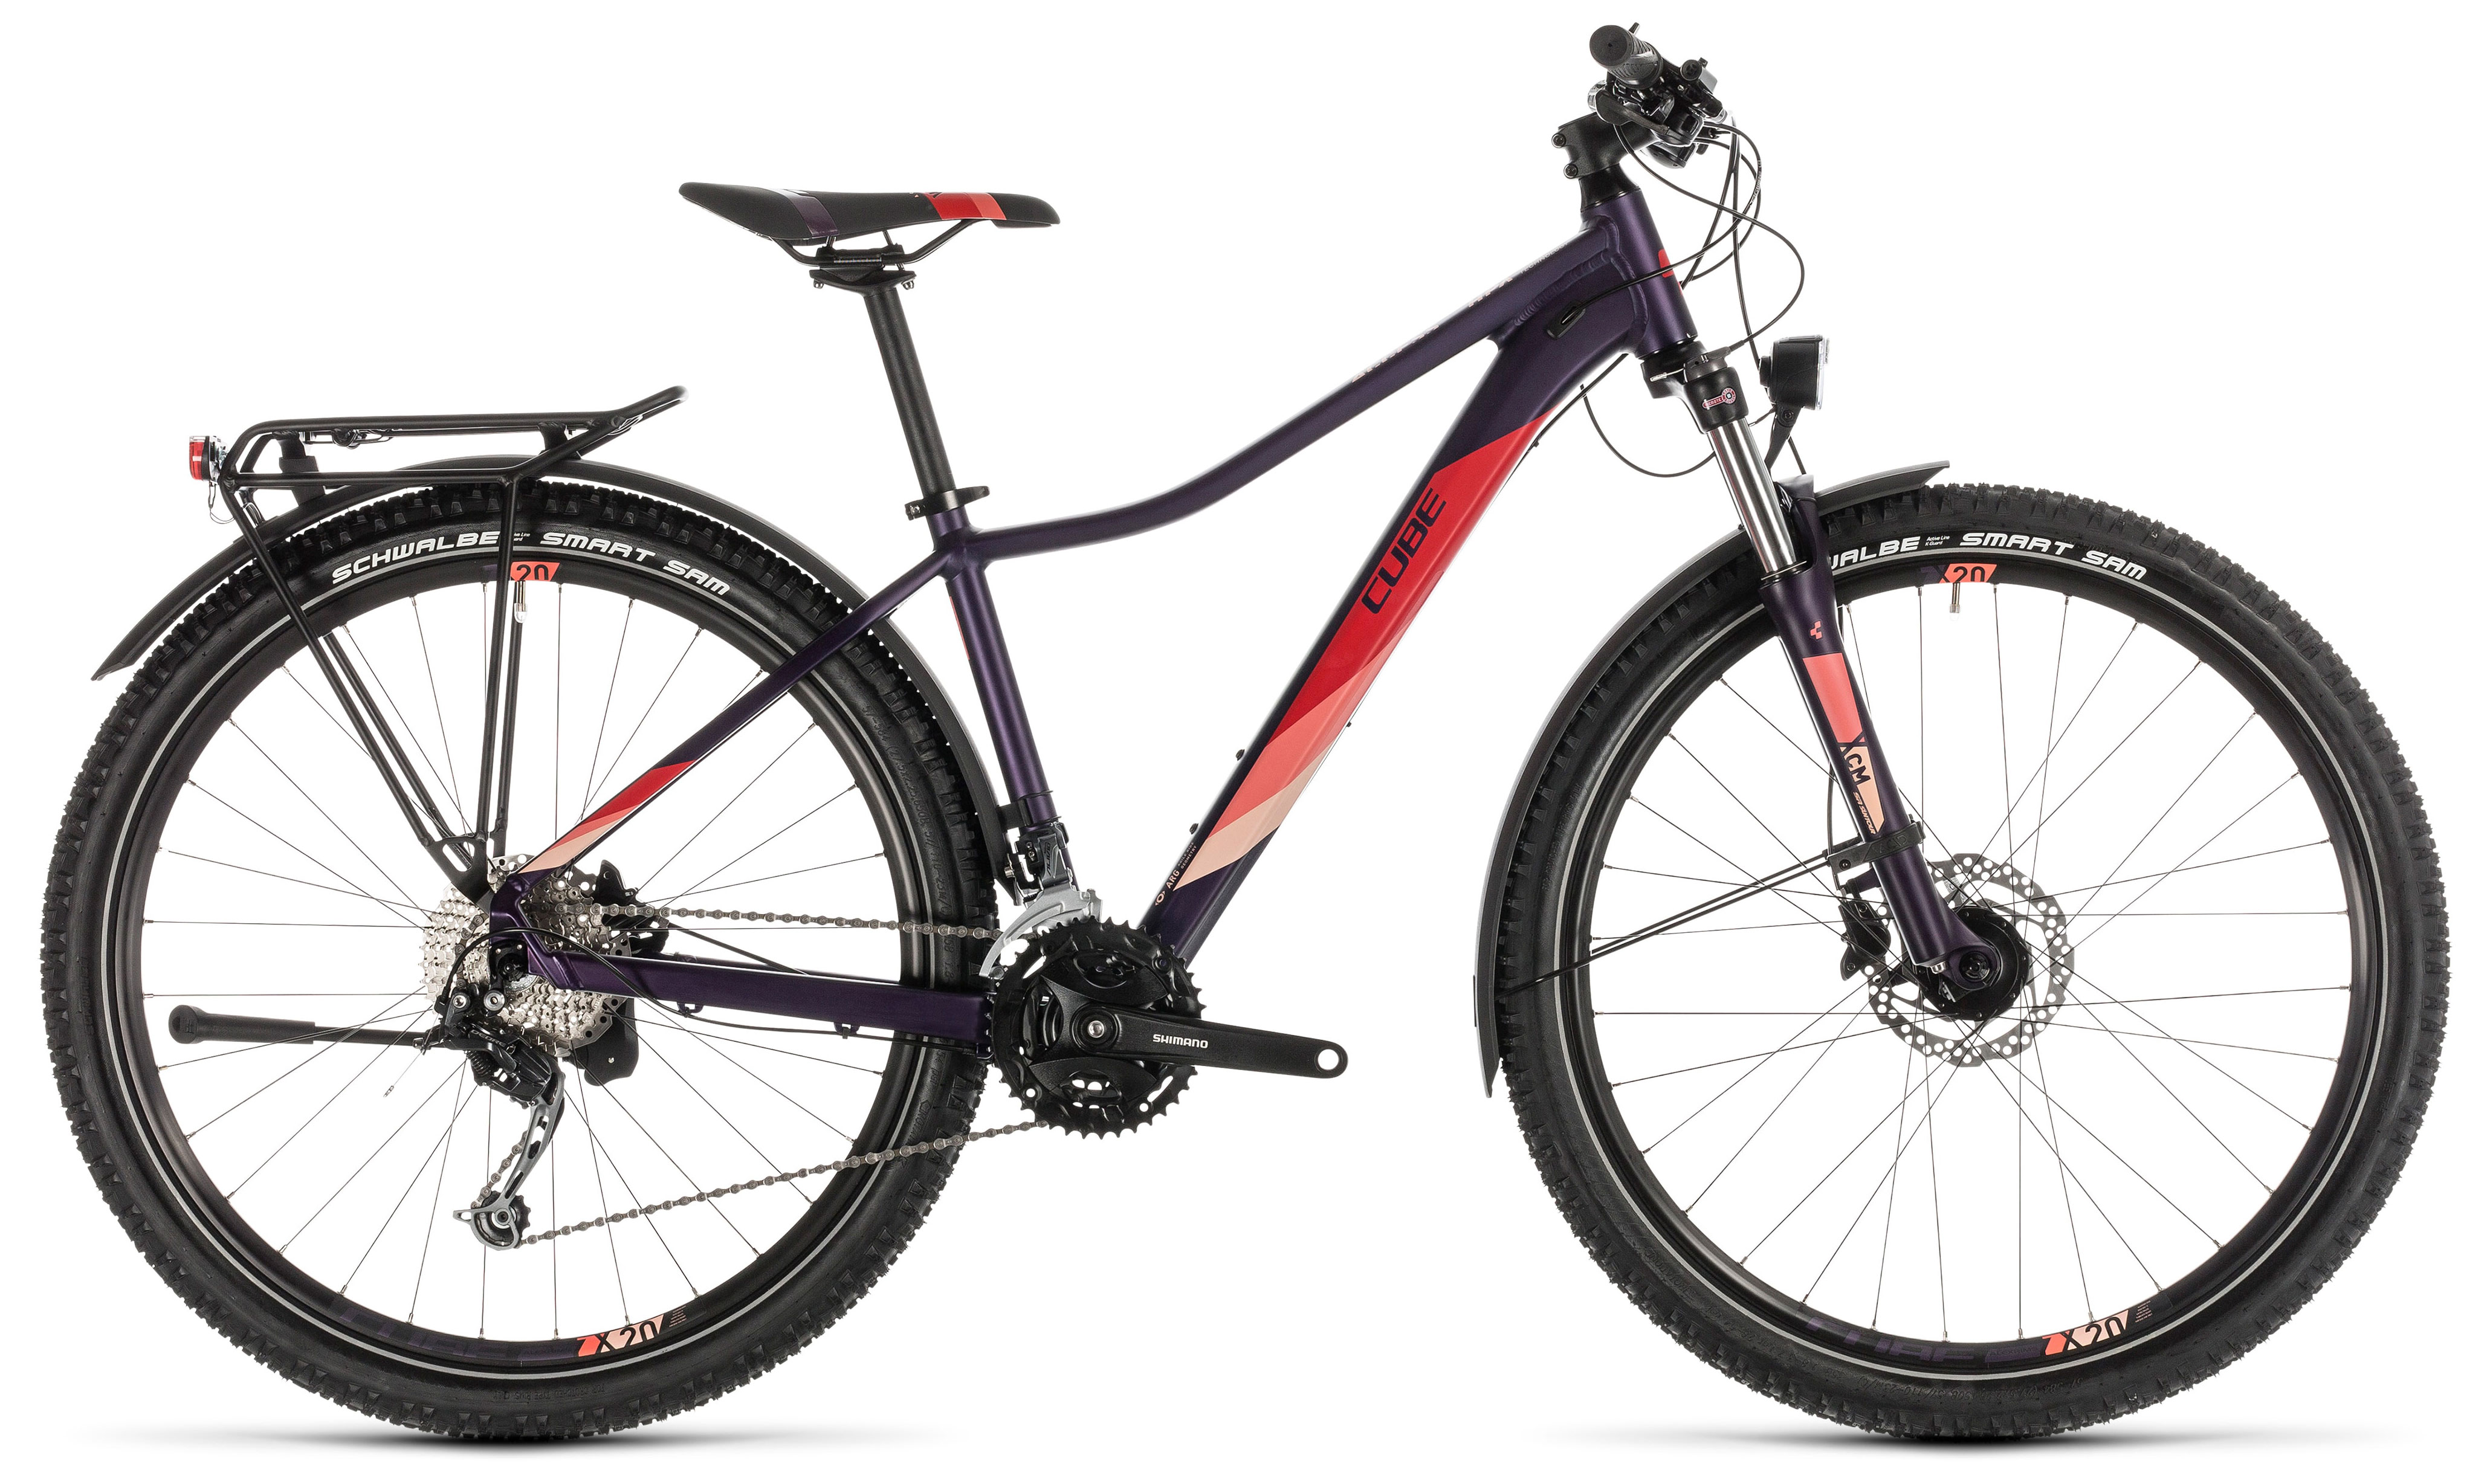 Велосипед Cube Access WS Pro Allroad 27.5 2019 велосипед cube access ws exc 29 2018